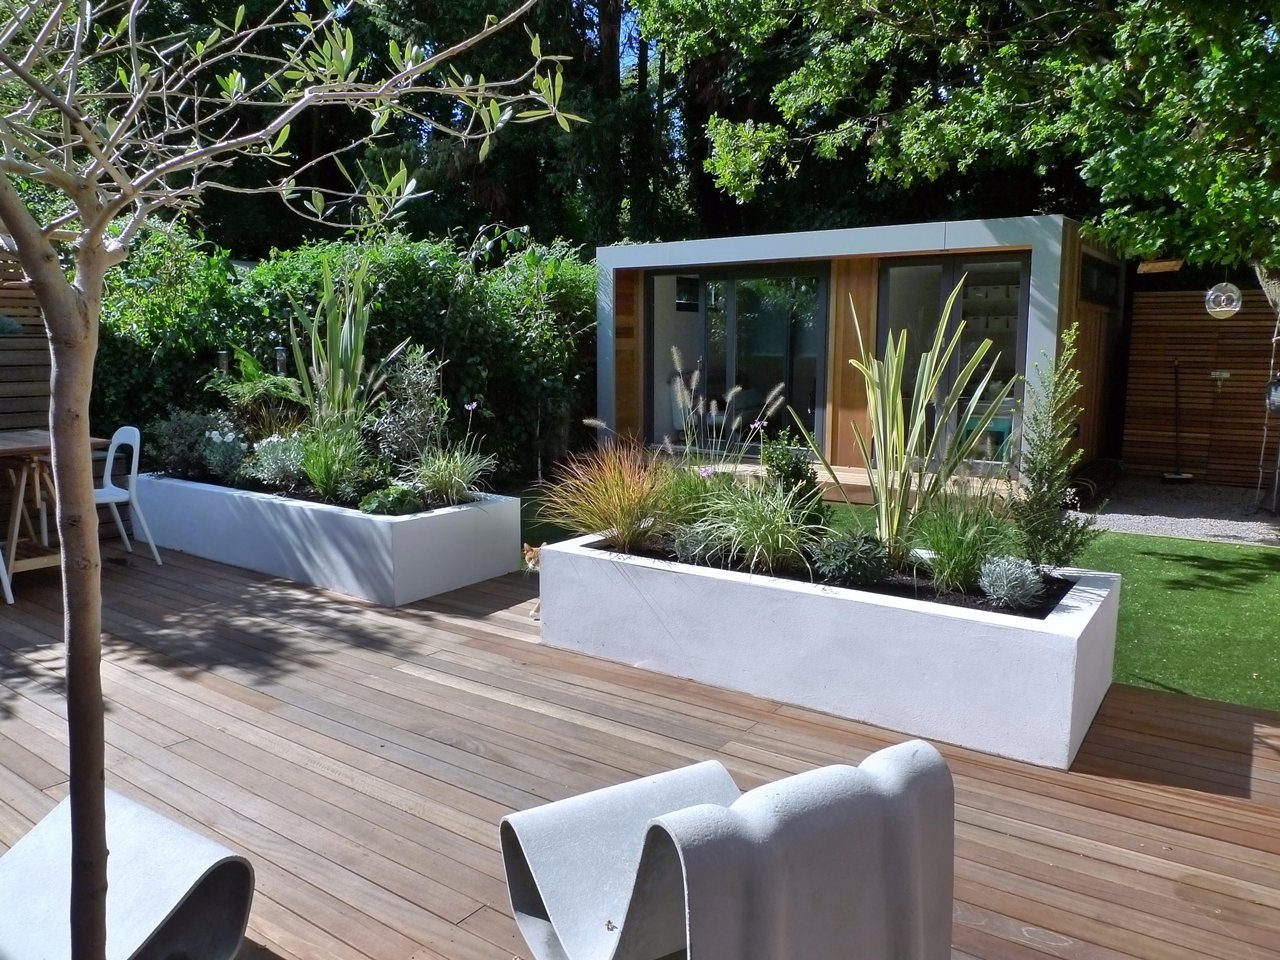 Contemporary garden design london modern home exteriors for Home garden design uk